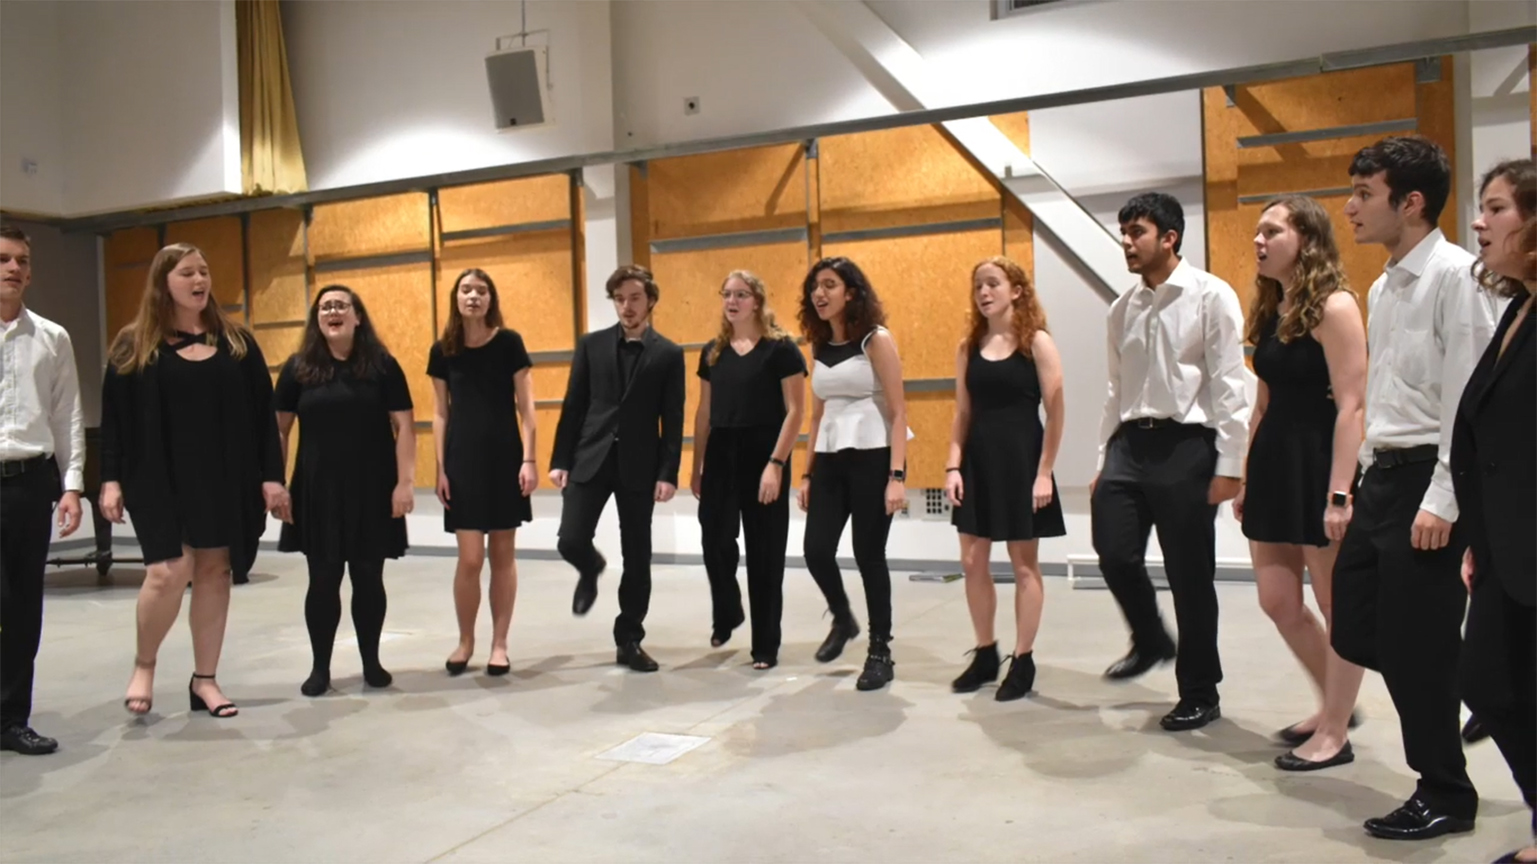 A group of choral students dressed in black and white performing in a concert in the West Village.